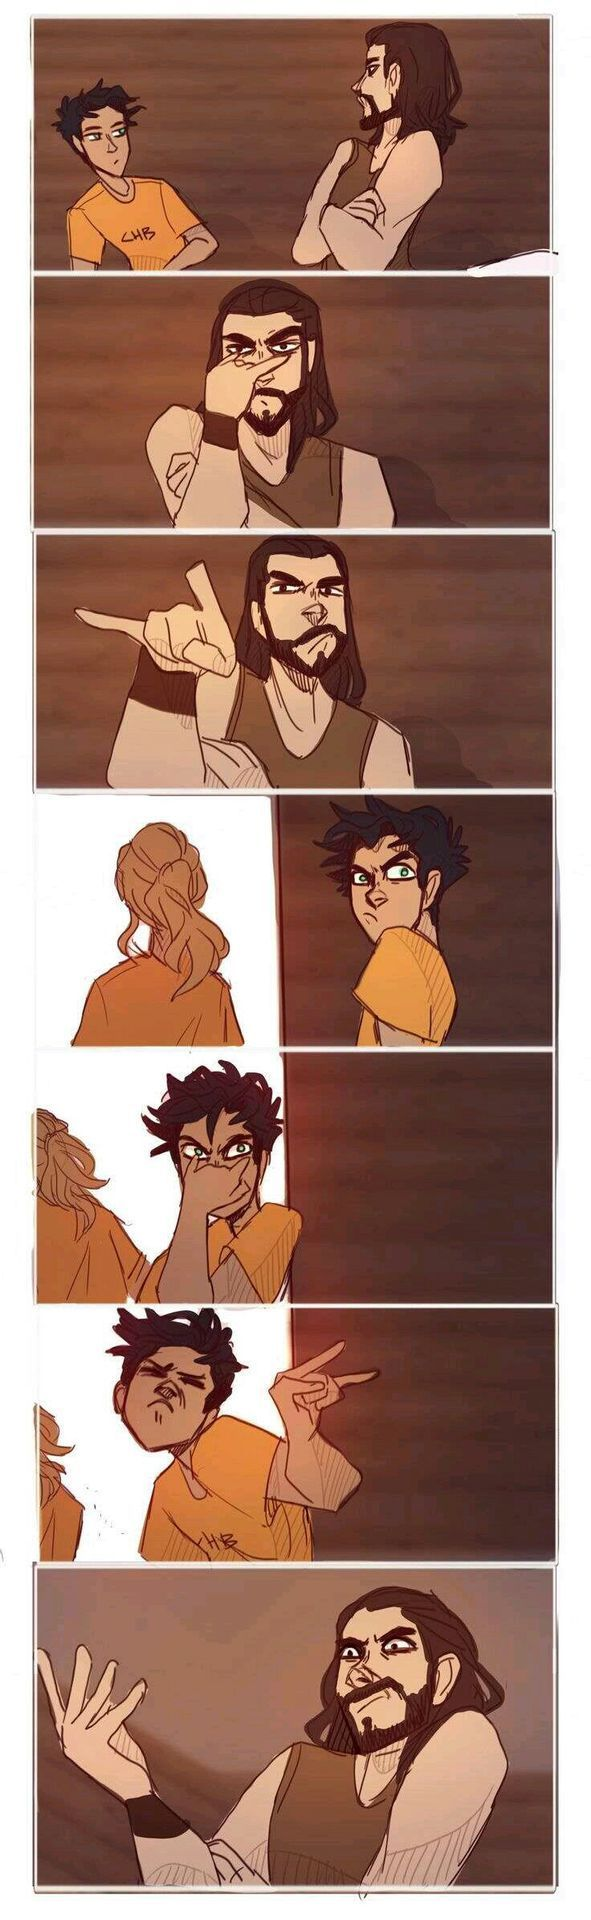 Demigods & Gods React to Demigodly Posts - 7 Ares and Twister in